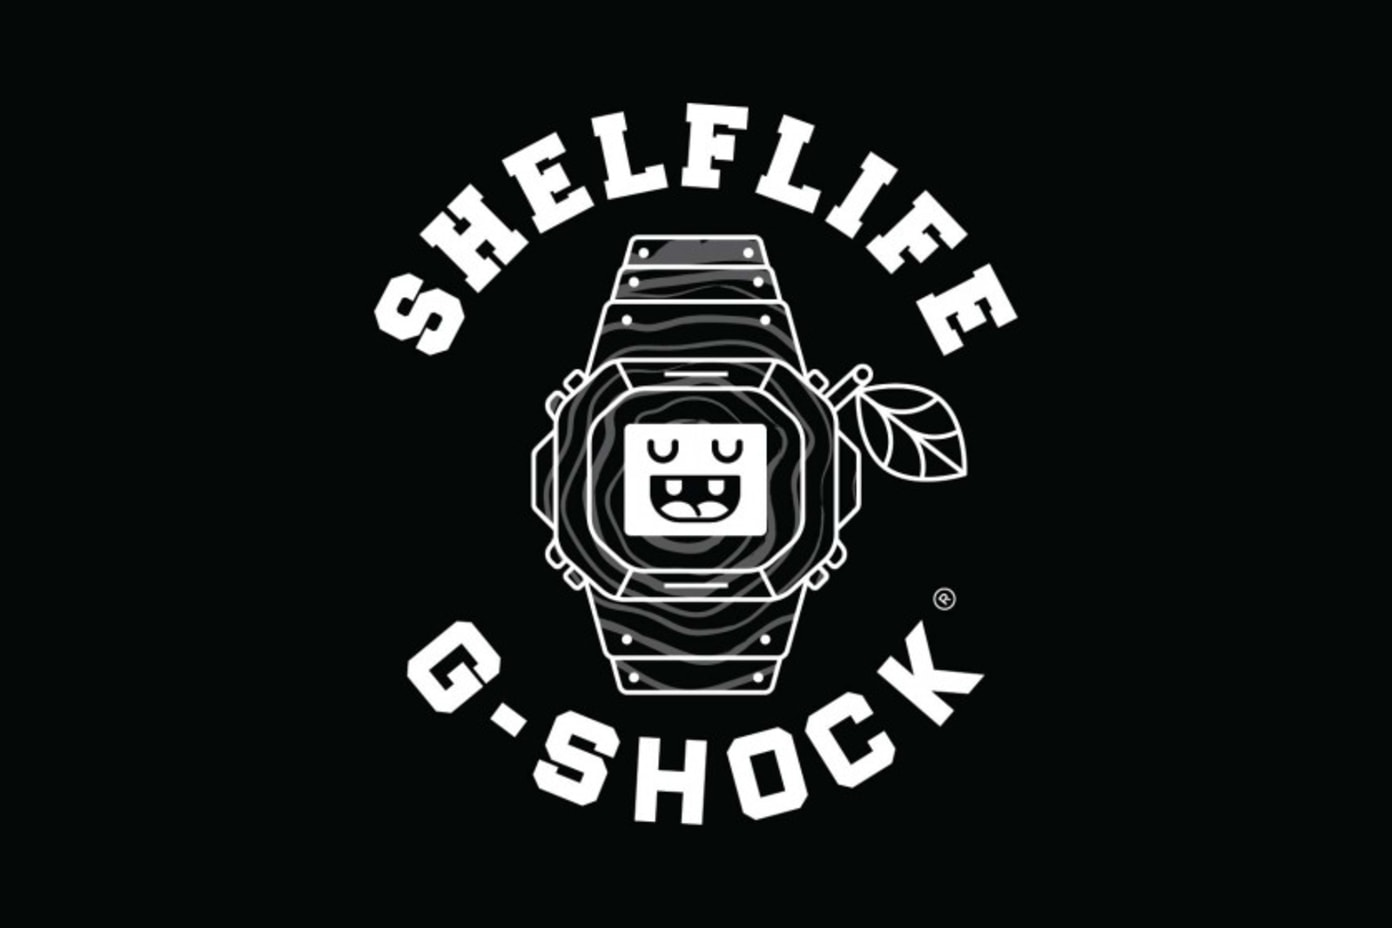 Shelflife X G-Shock Watch Collaboration